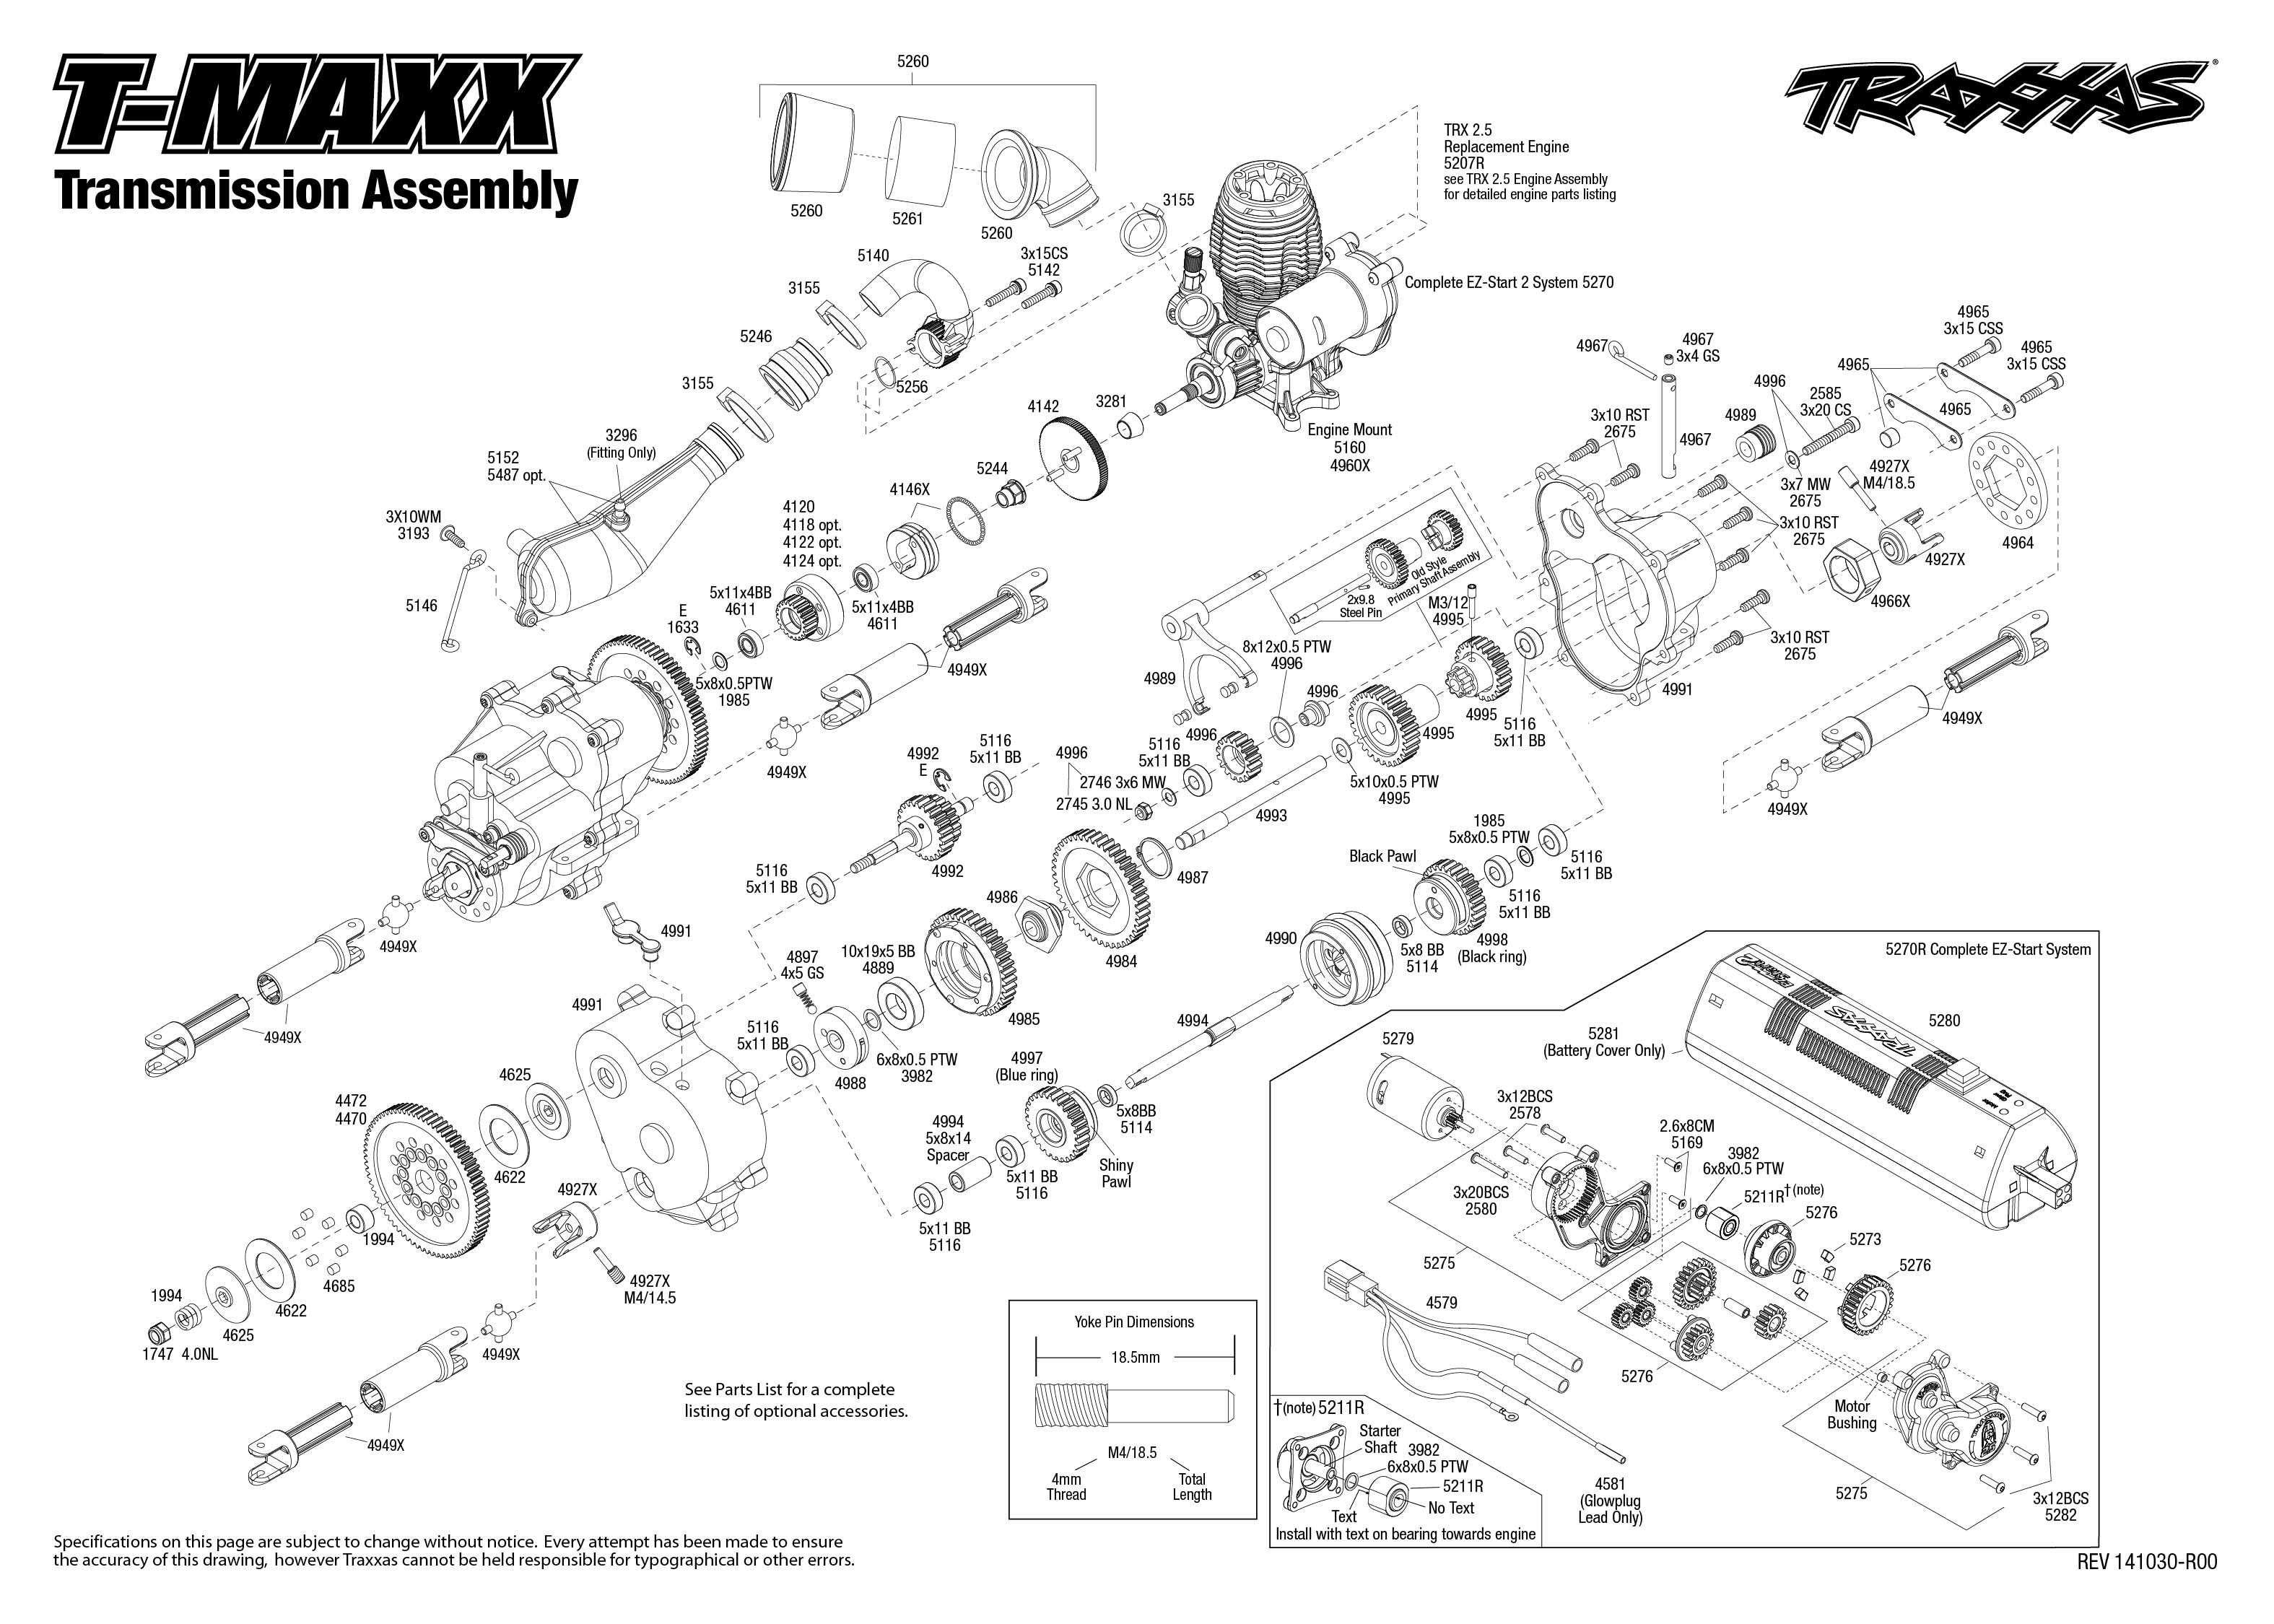 E Maxx Exploded Diagram Trusted Wiring Diagrams Iphone Of Parts T 49104 1 Transmission Assembly View Traxxas 3903